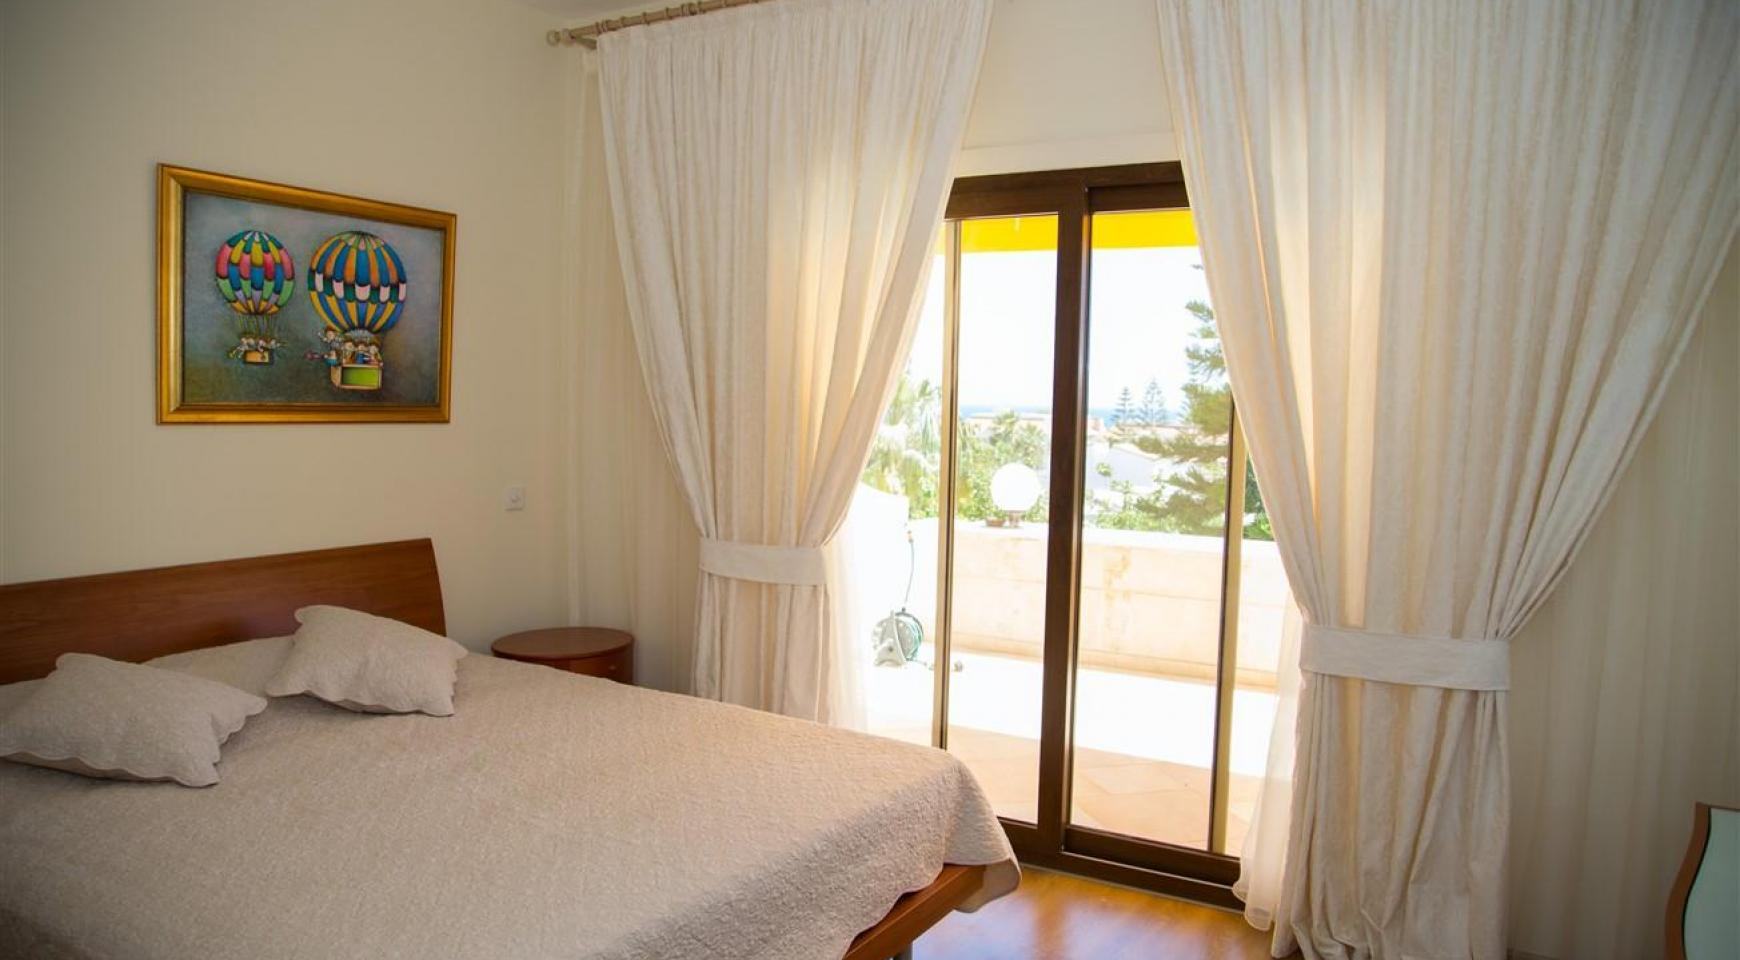 3 Bedroom Apartment in Thera Complex by the Sea - 29